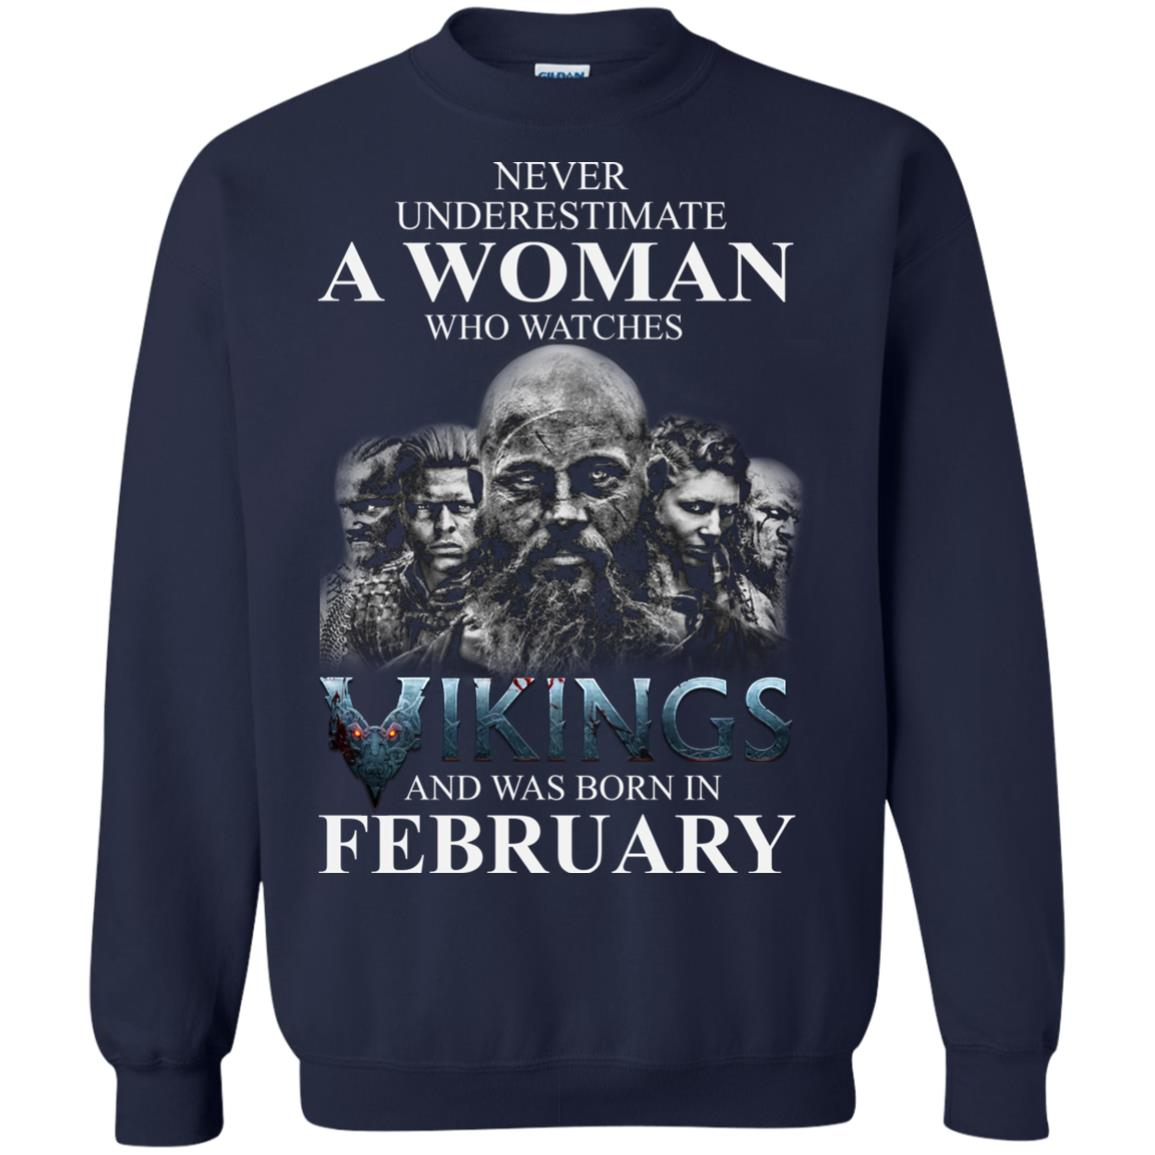 image 1346 - Never Underestimate A woman who watches Vikings and was born in February shirt